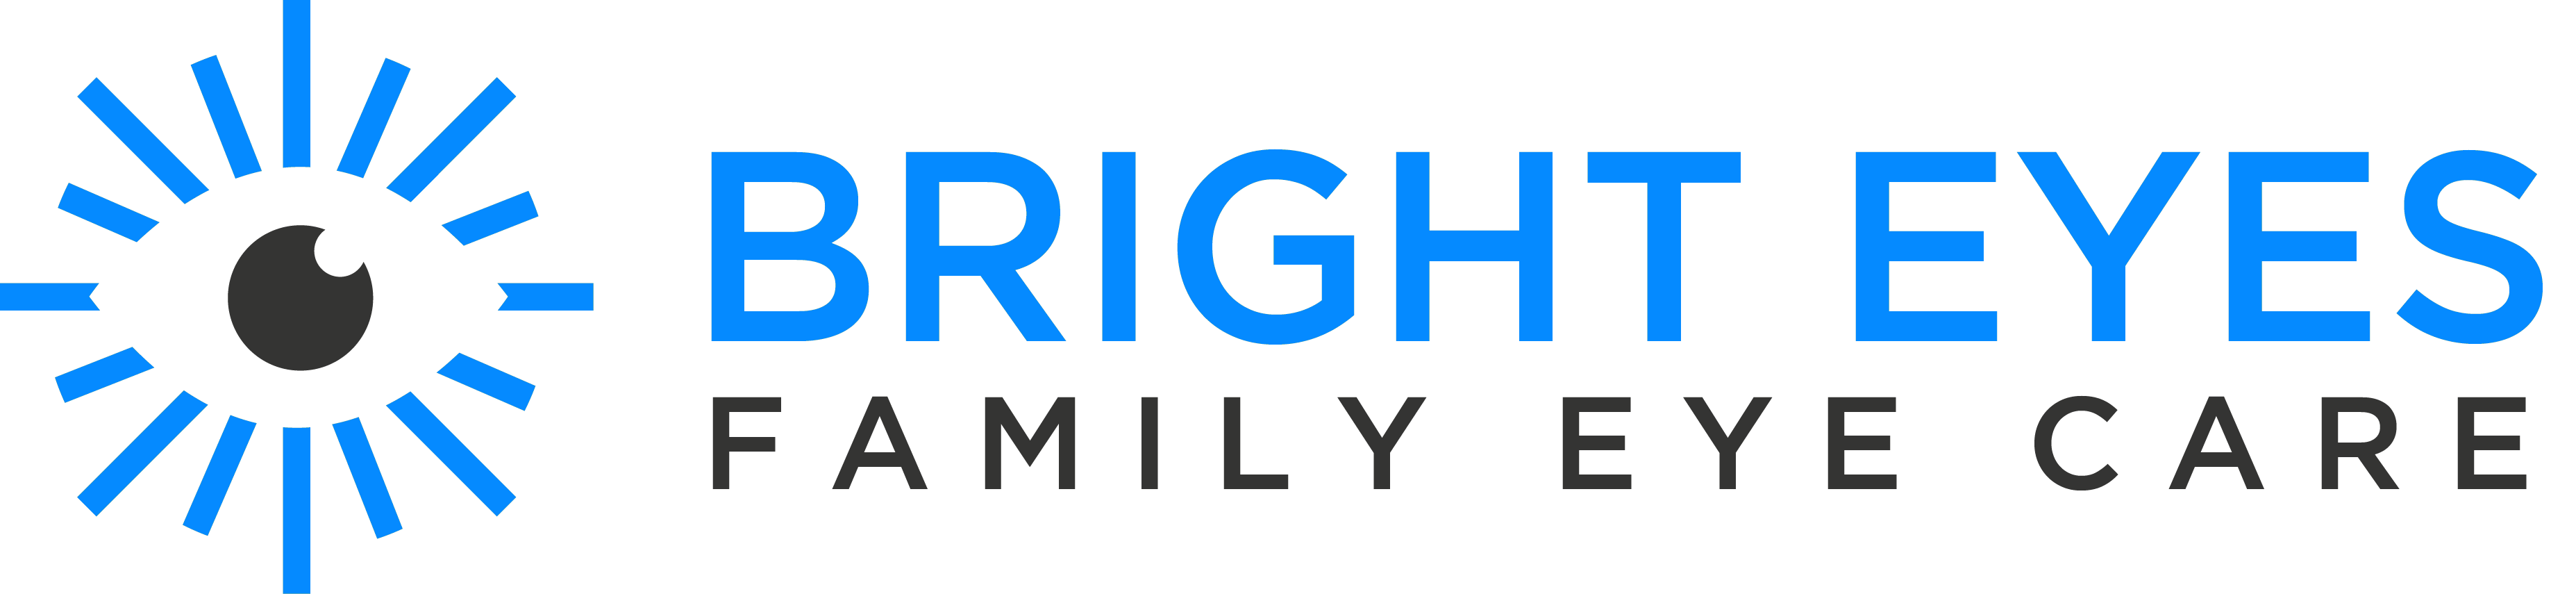 Bright Eyes Family Eye Care